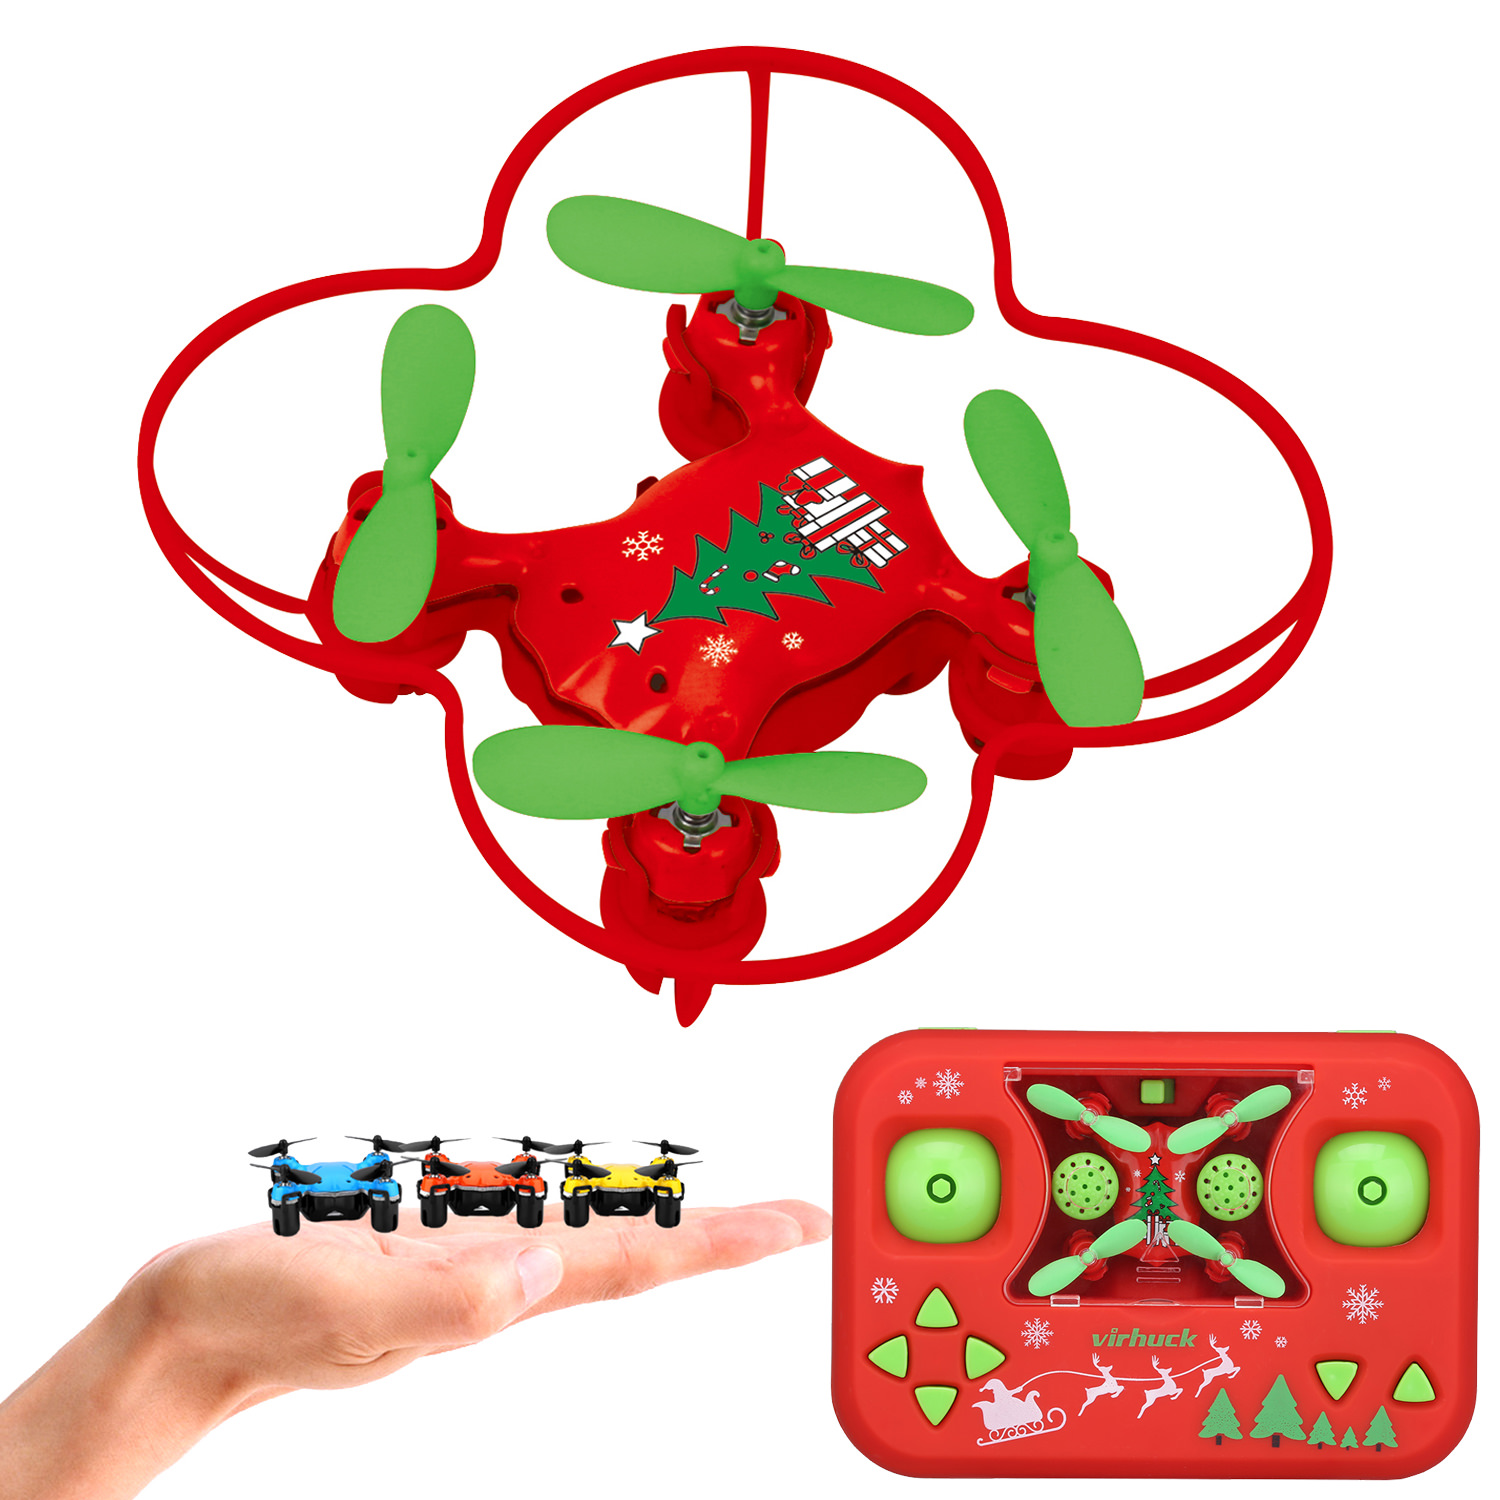 Virhuck Mini Volar-360 RC Nano Drone 2.4 GHz 4.5 CH 6 AXIS GYRO System Multicolor LED Lights Headless/One Key Return Mode Quadcopter,Remote Control,Pocket Size,Red